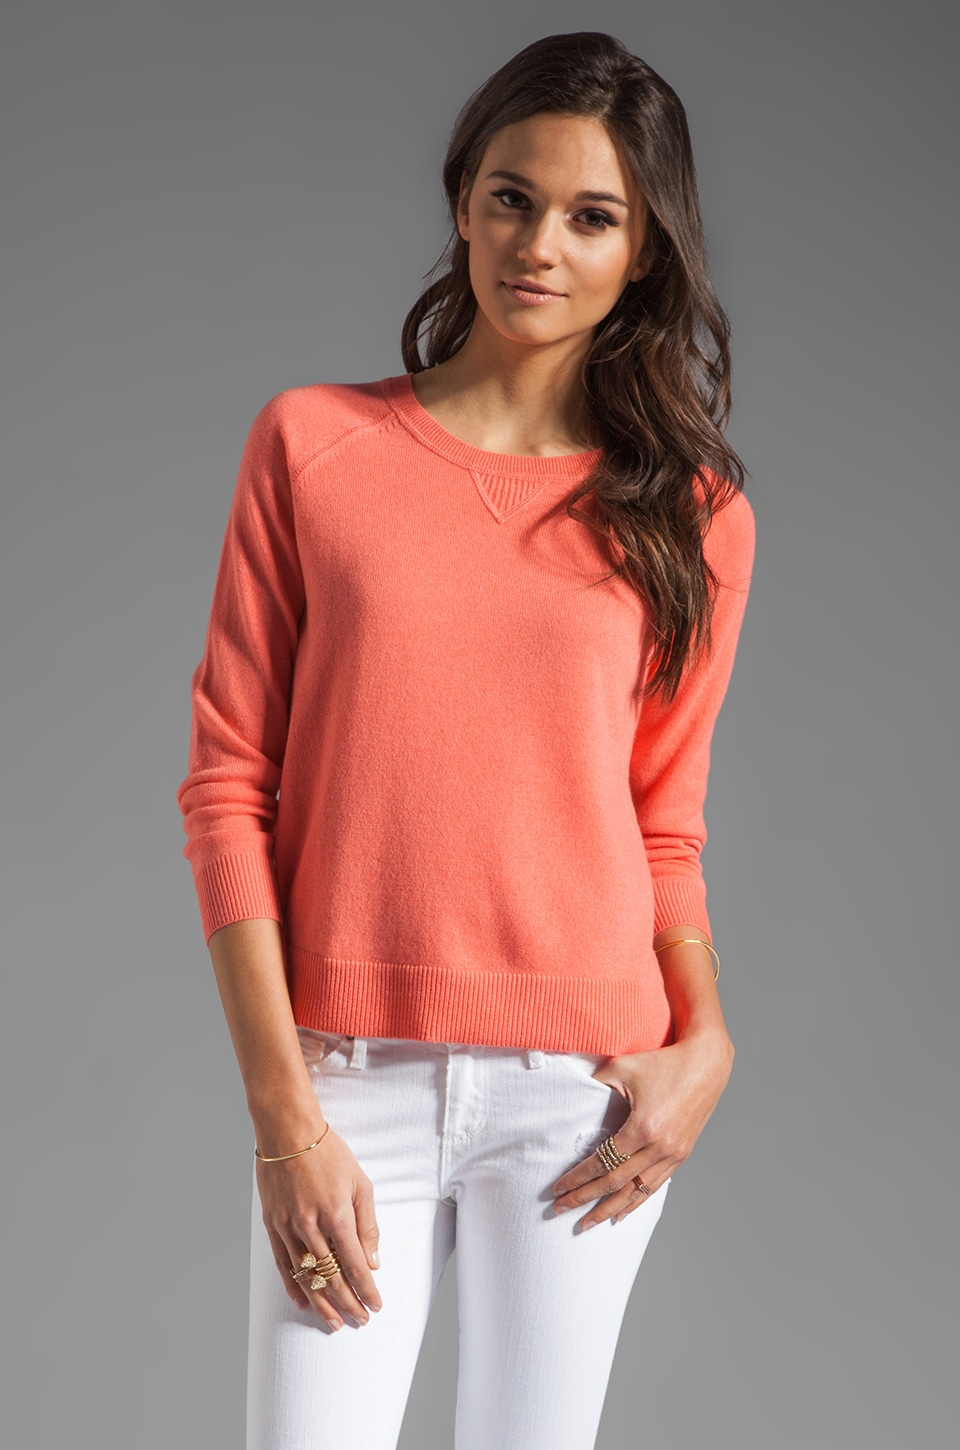 Theory Cashmere Abner C Sweater in Coral